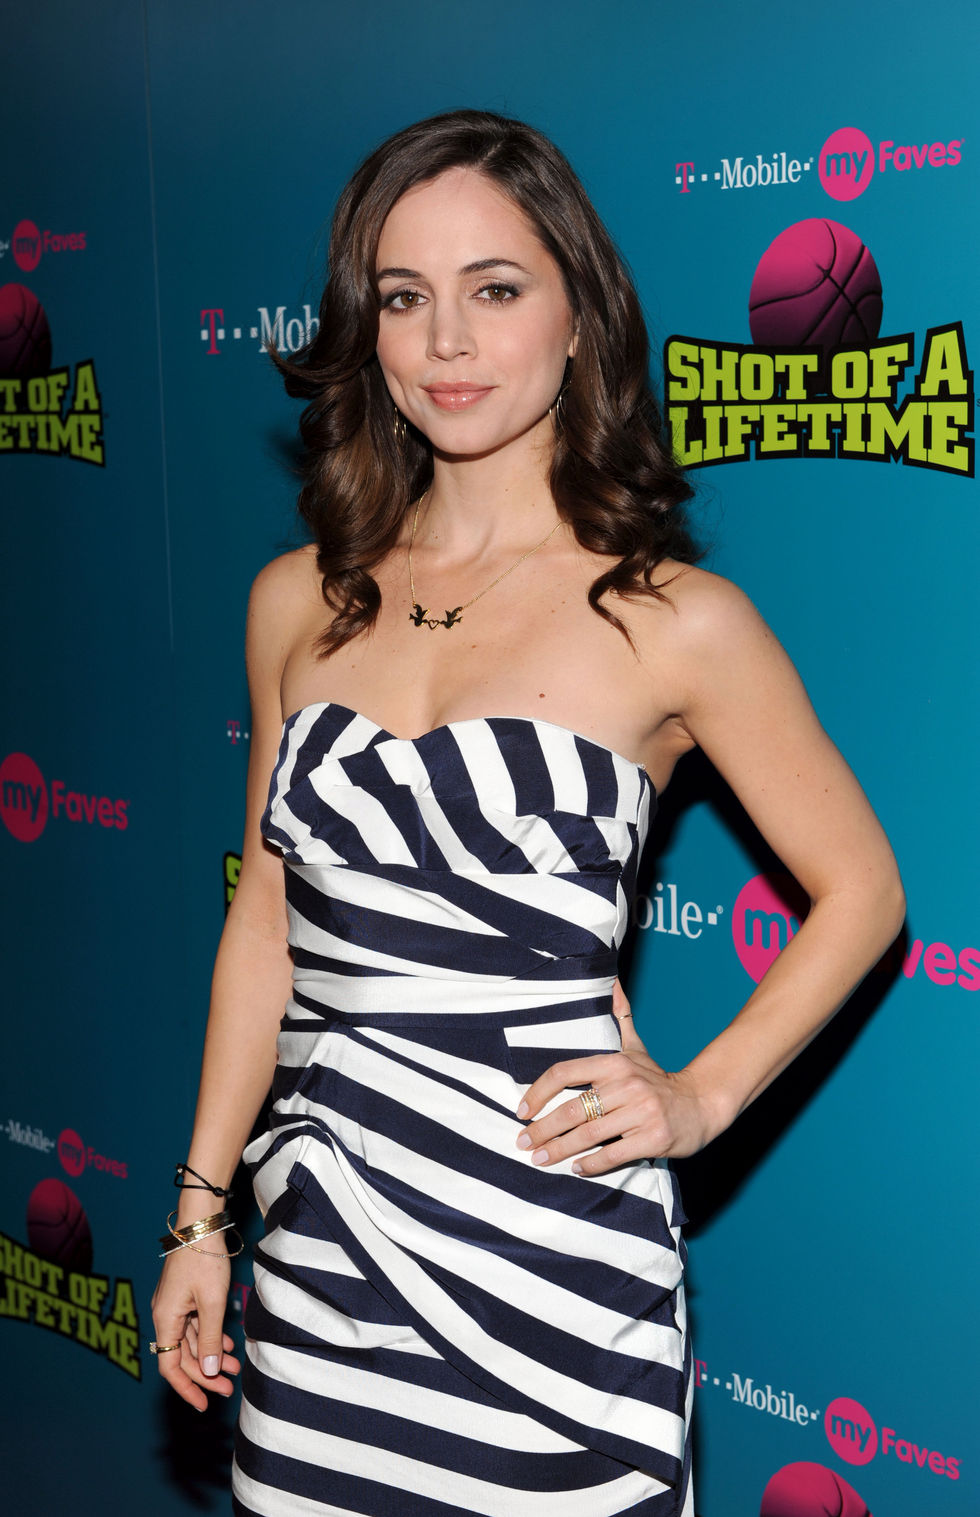 eliza-dushku-myfaves-shot-of-a-lifetime-launch-01